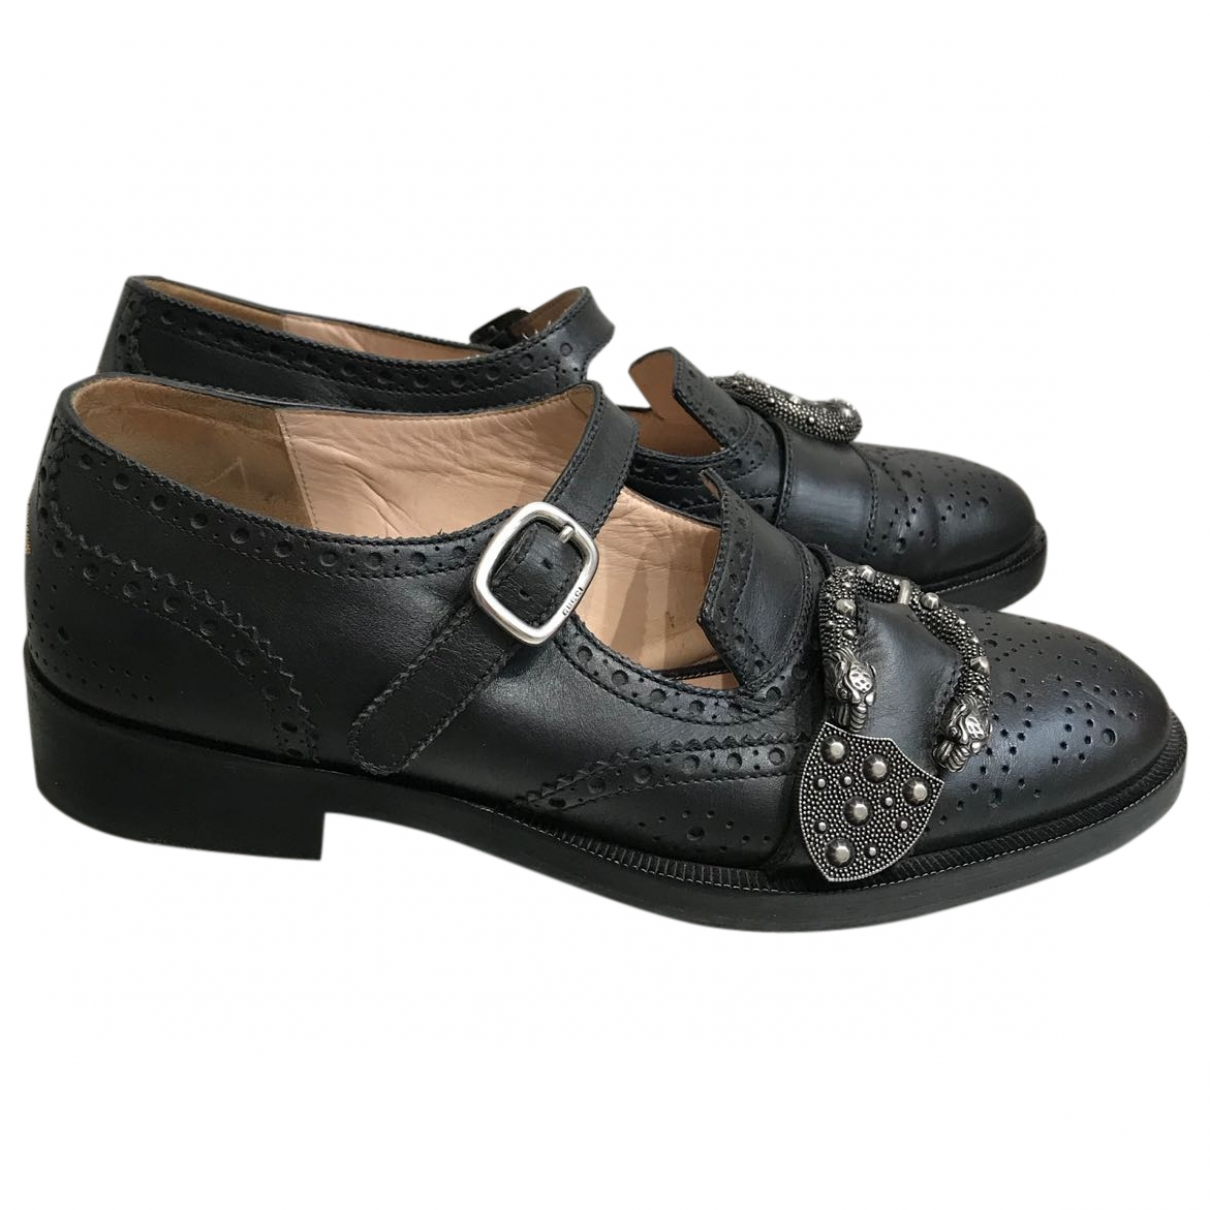 Gucci Queercore Black Leather Flats for Women 38 IT